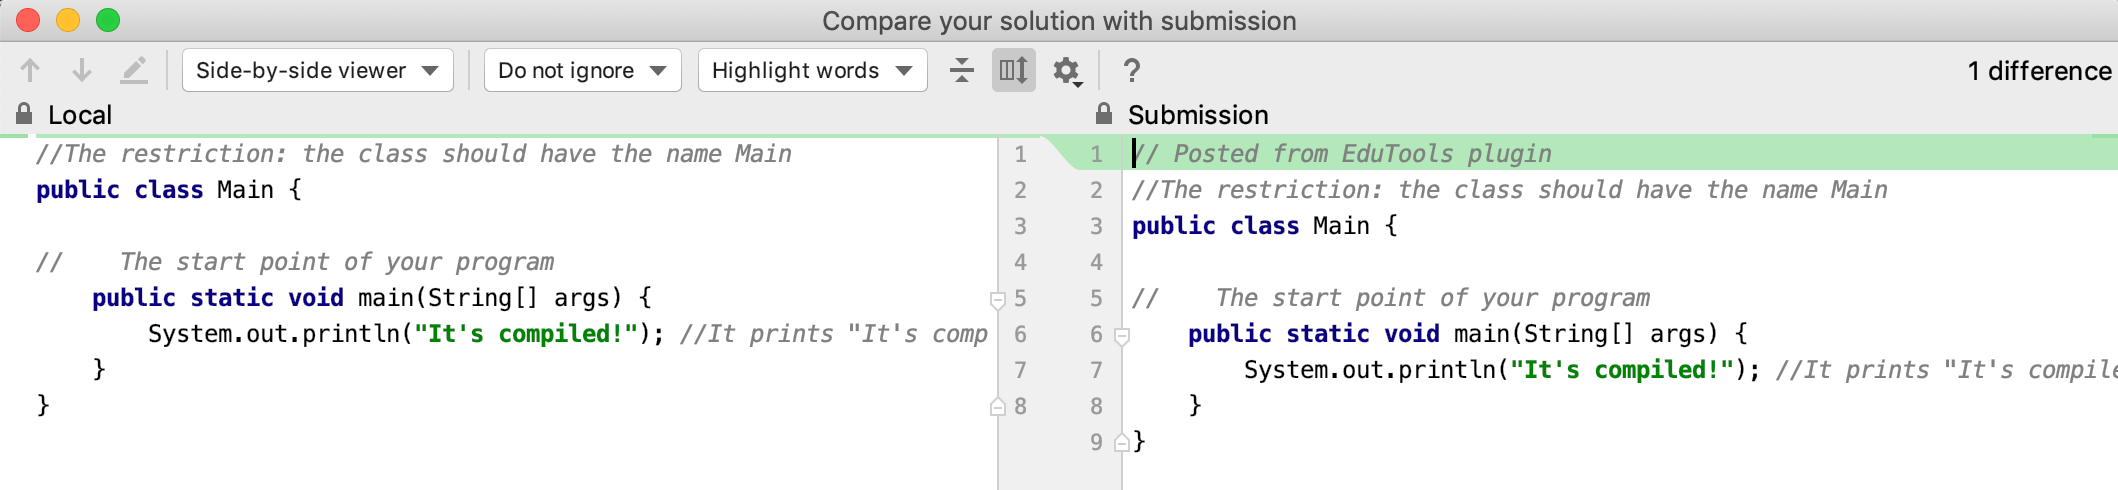 edu submissions diff java intro png